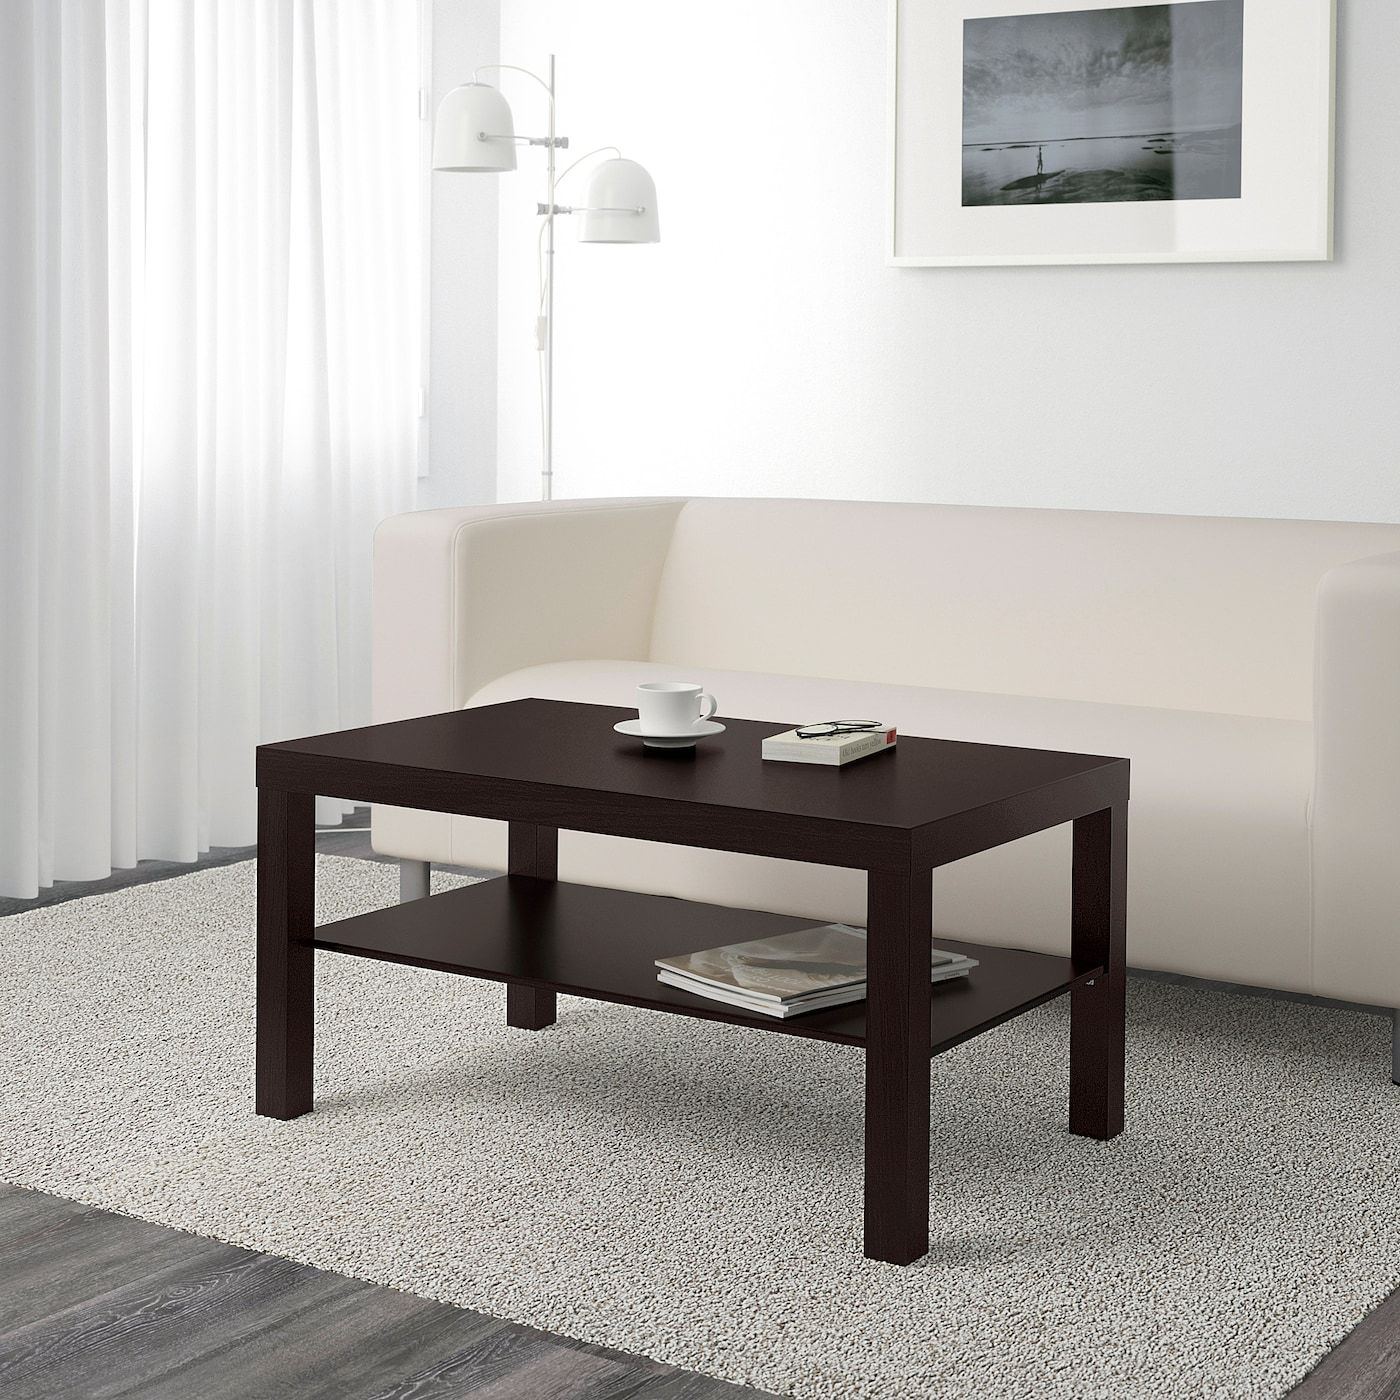 Ikea Couchtisch Mit Glas Lack Coffee Table, Black-brown, 353/8x215/8\